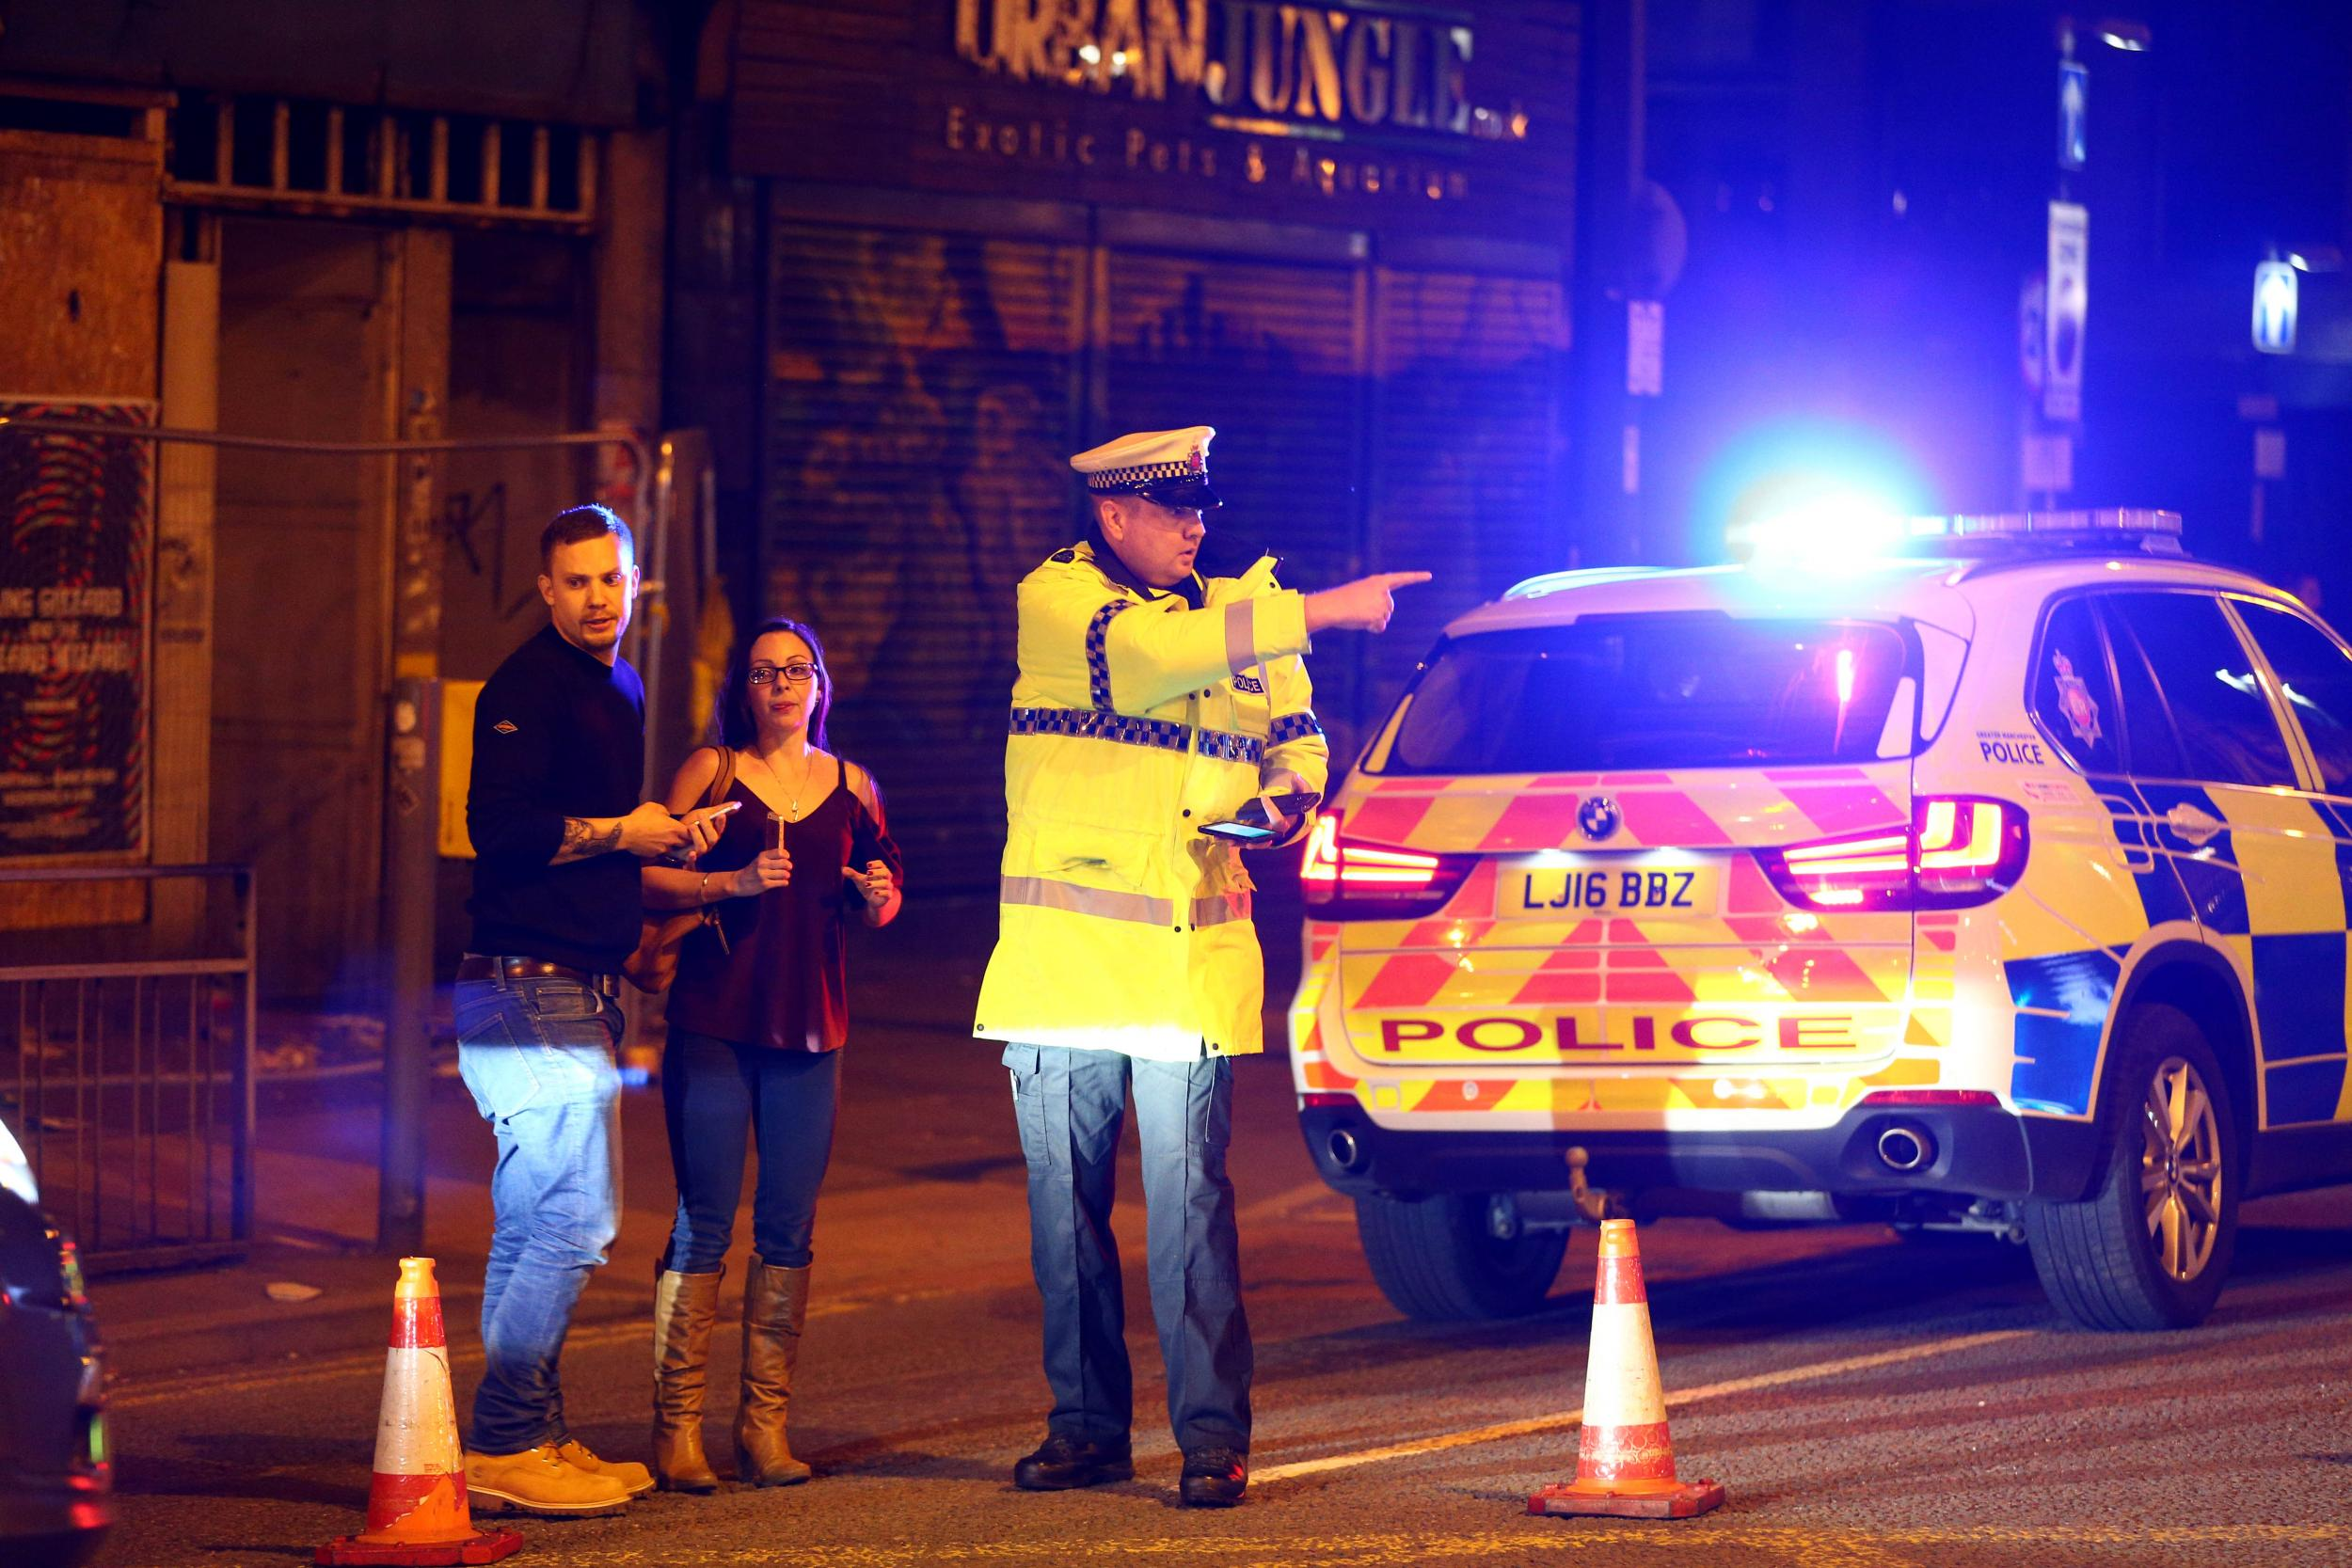 Manchester 'explosion' being treated as 'possible terrorist incident'